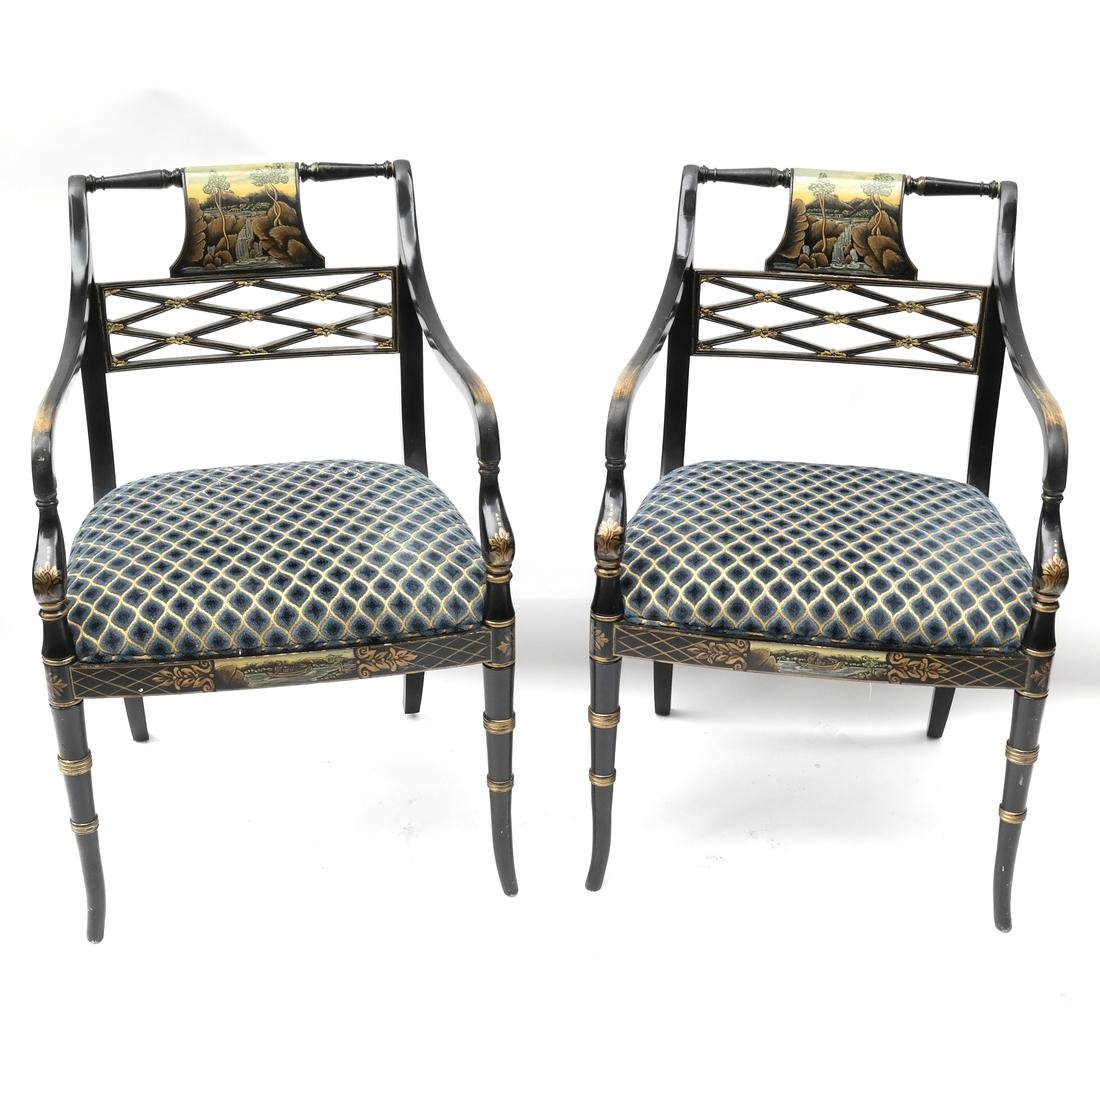 Pair Regency-Style Ebonized Chairs